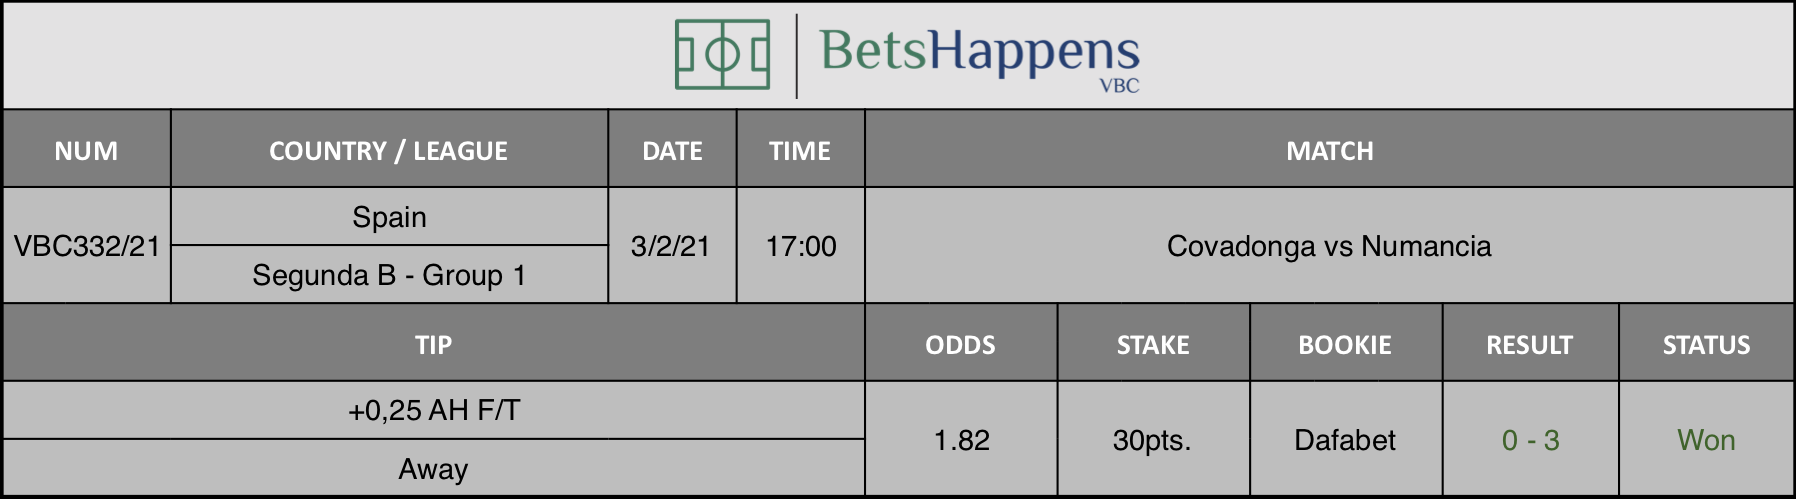 Results of our tip for the Covadonga vs Numancia match where +0,25 AH F/T - Away is recommended.